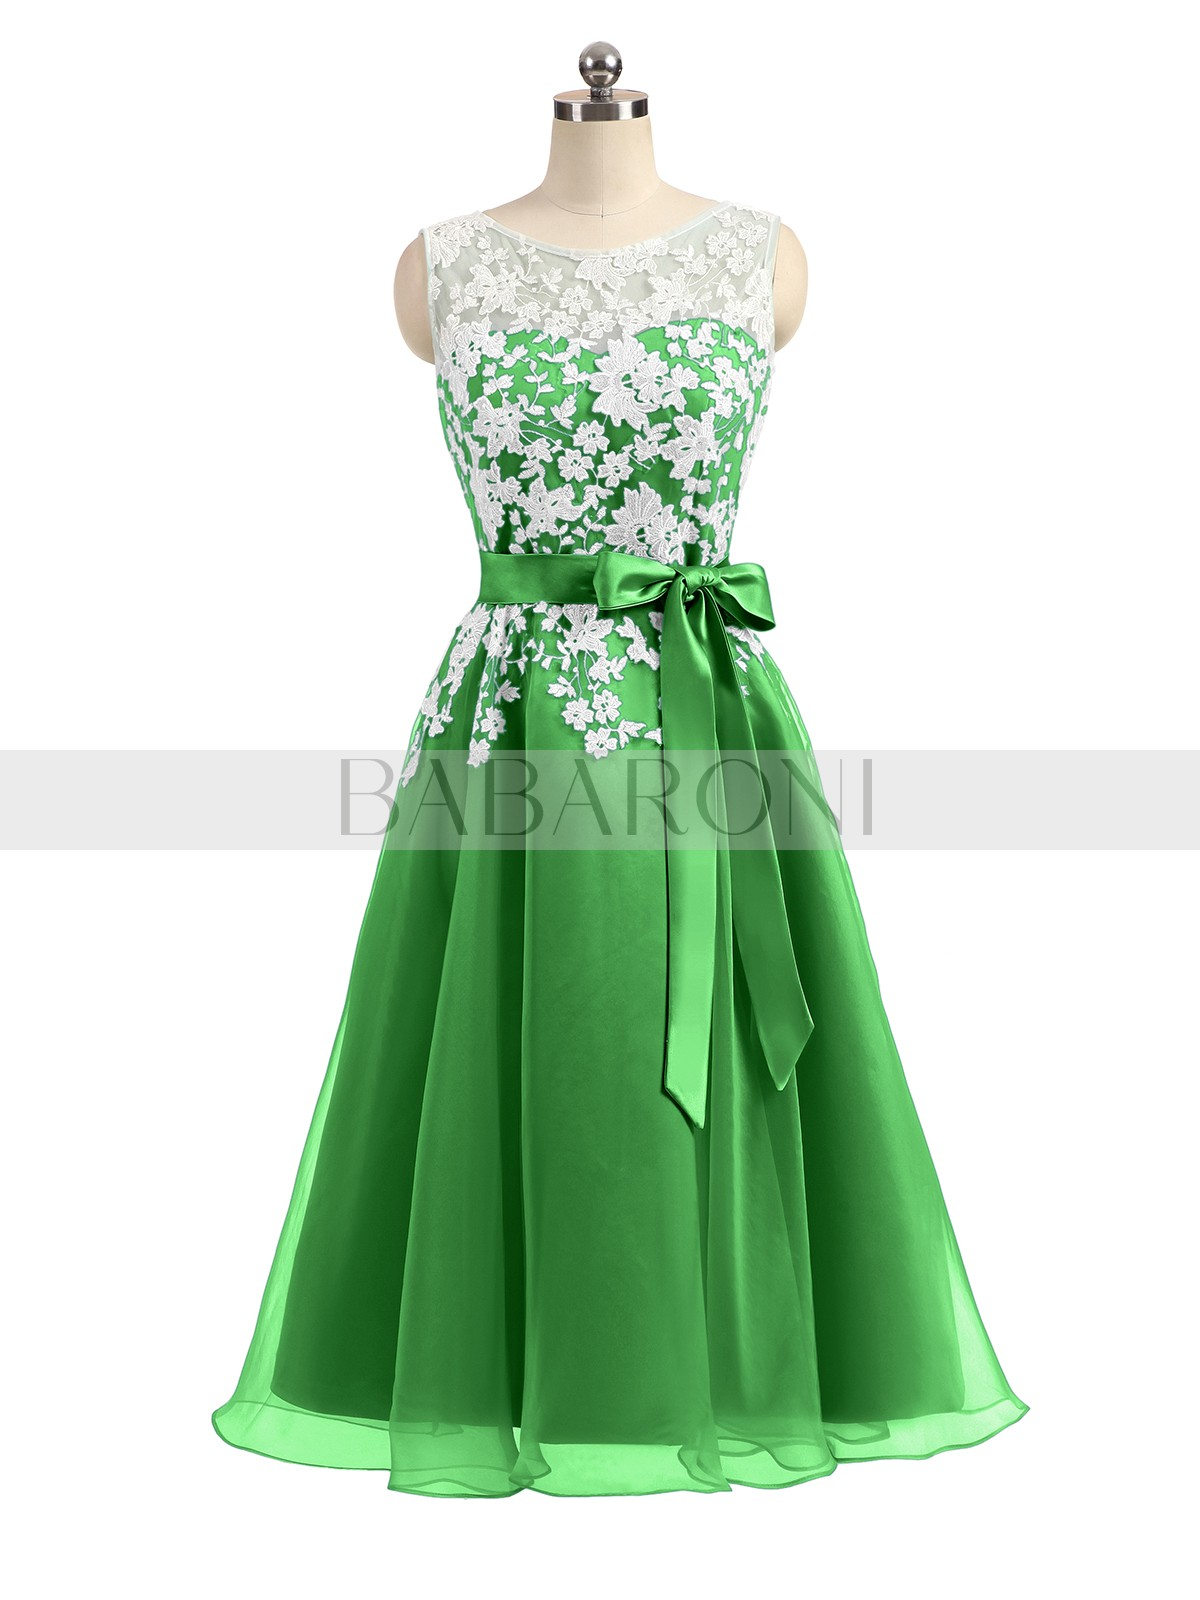 dbb82af67dc Green Anastasia Illusion Neck Oranza with Ivory Lace Appliqued ...